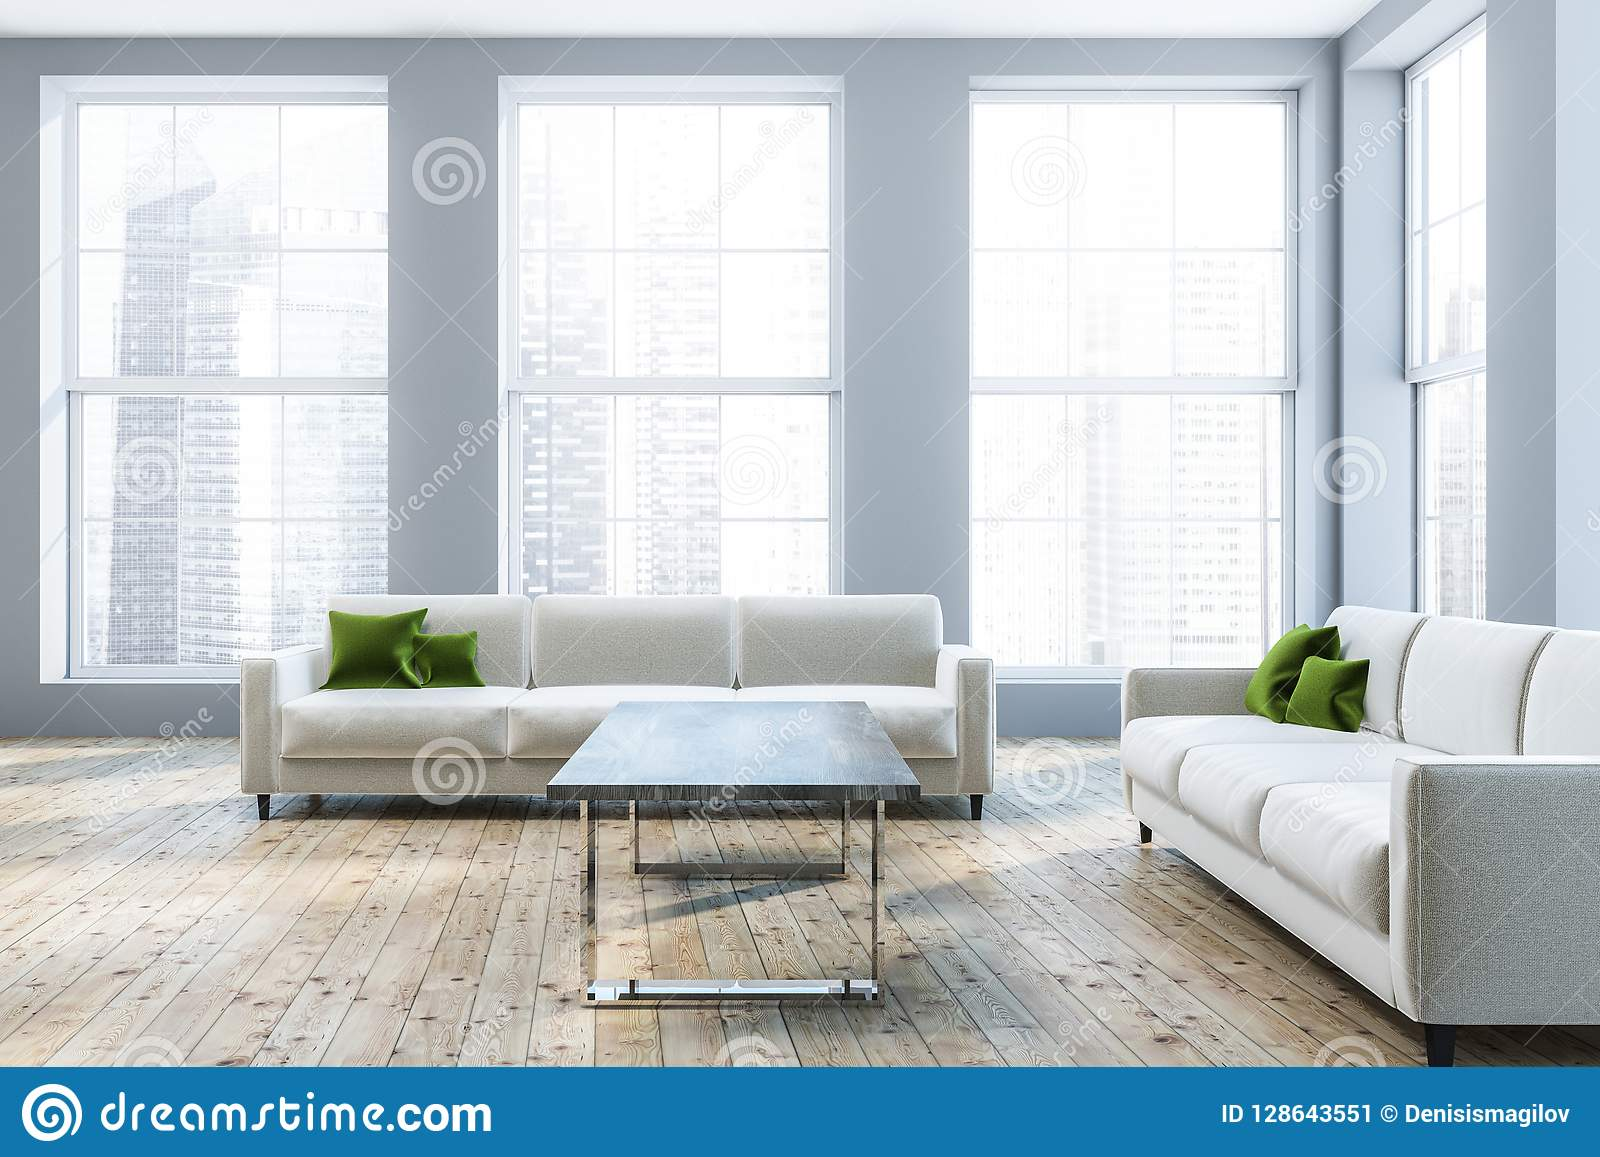 Swell White Couches In White Living Room Interior Stock Gamerscity Chair Design For Home Gamerscityorg